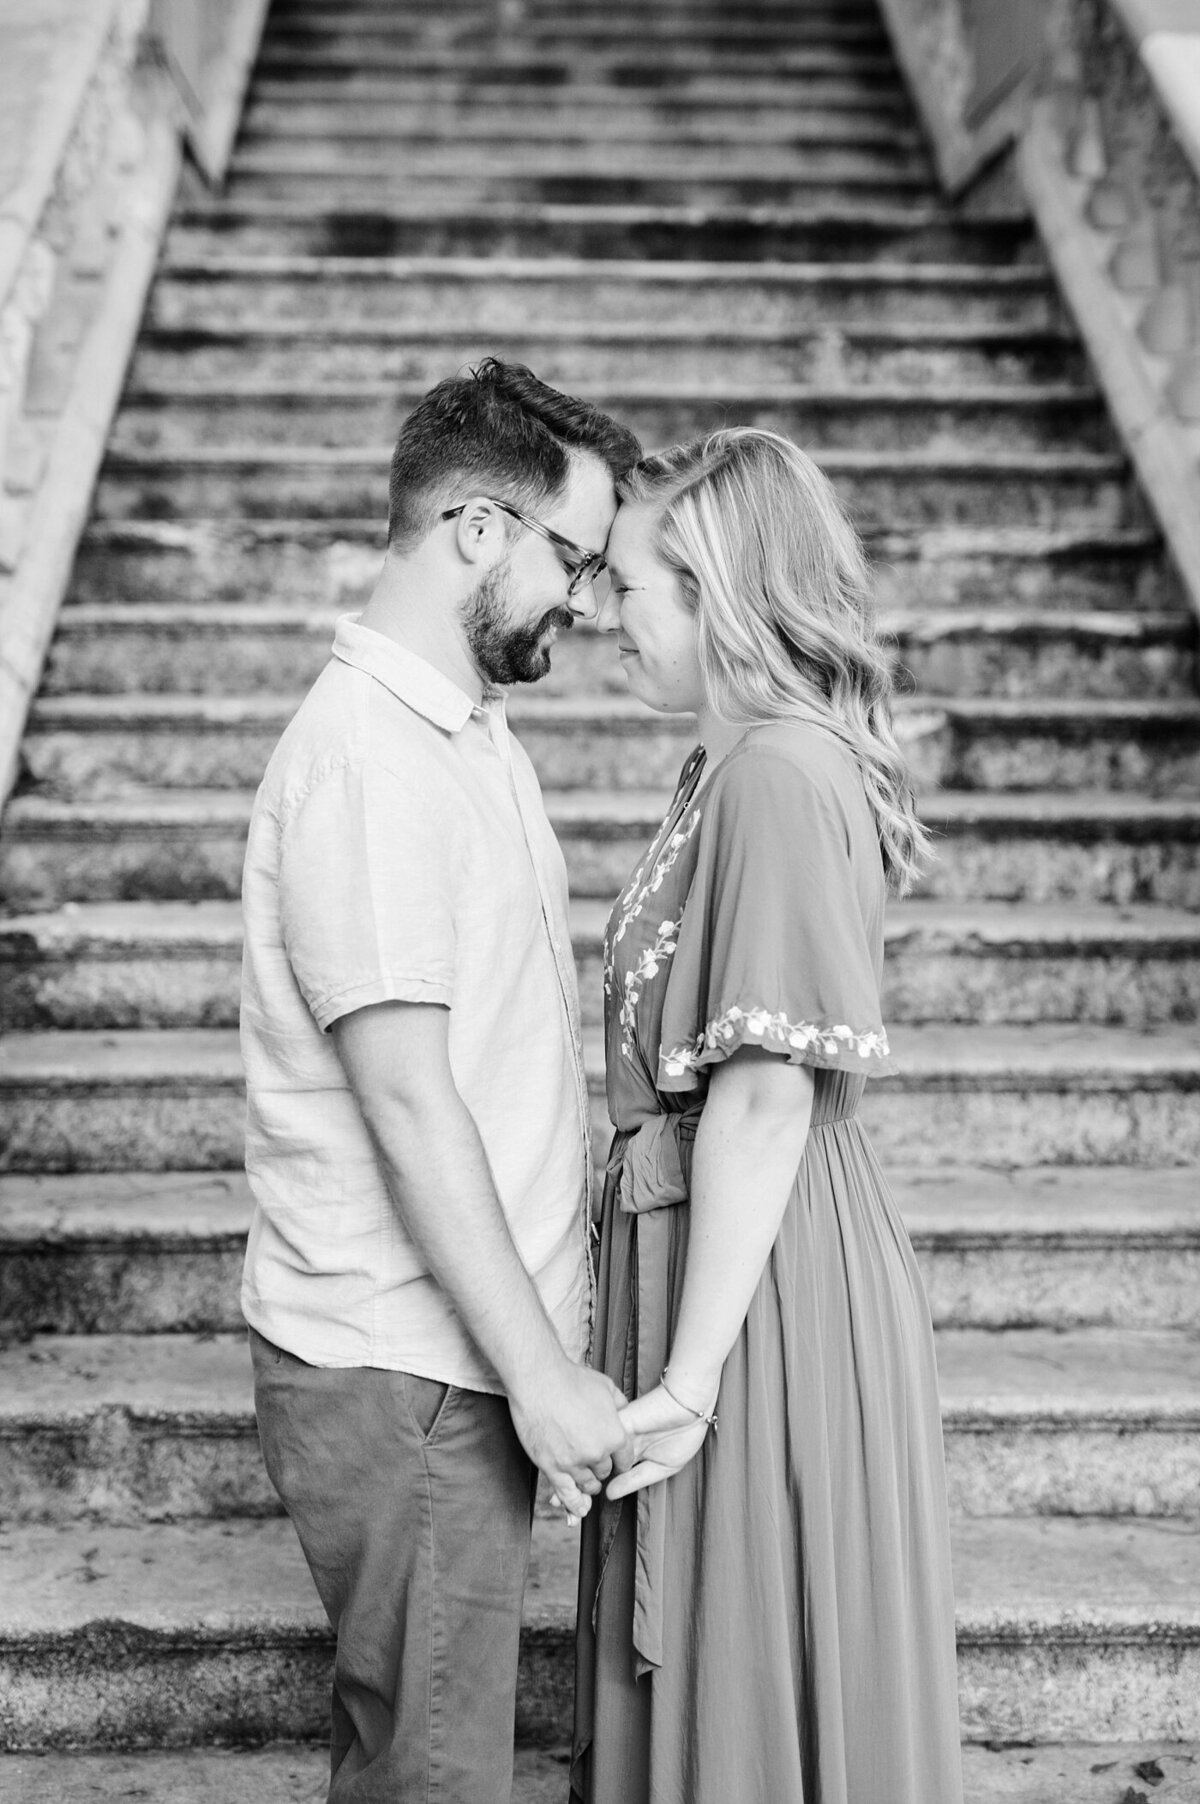 cator-woolford-gardens-engagement-wedding-photographer-laura-barnes-photo-shackelford-04